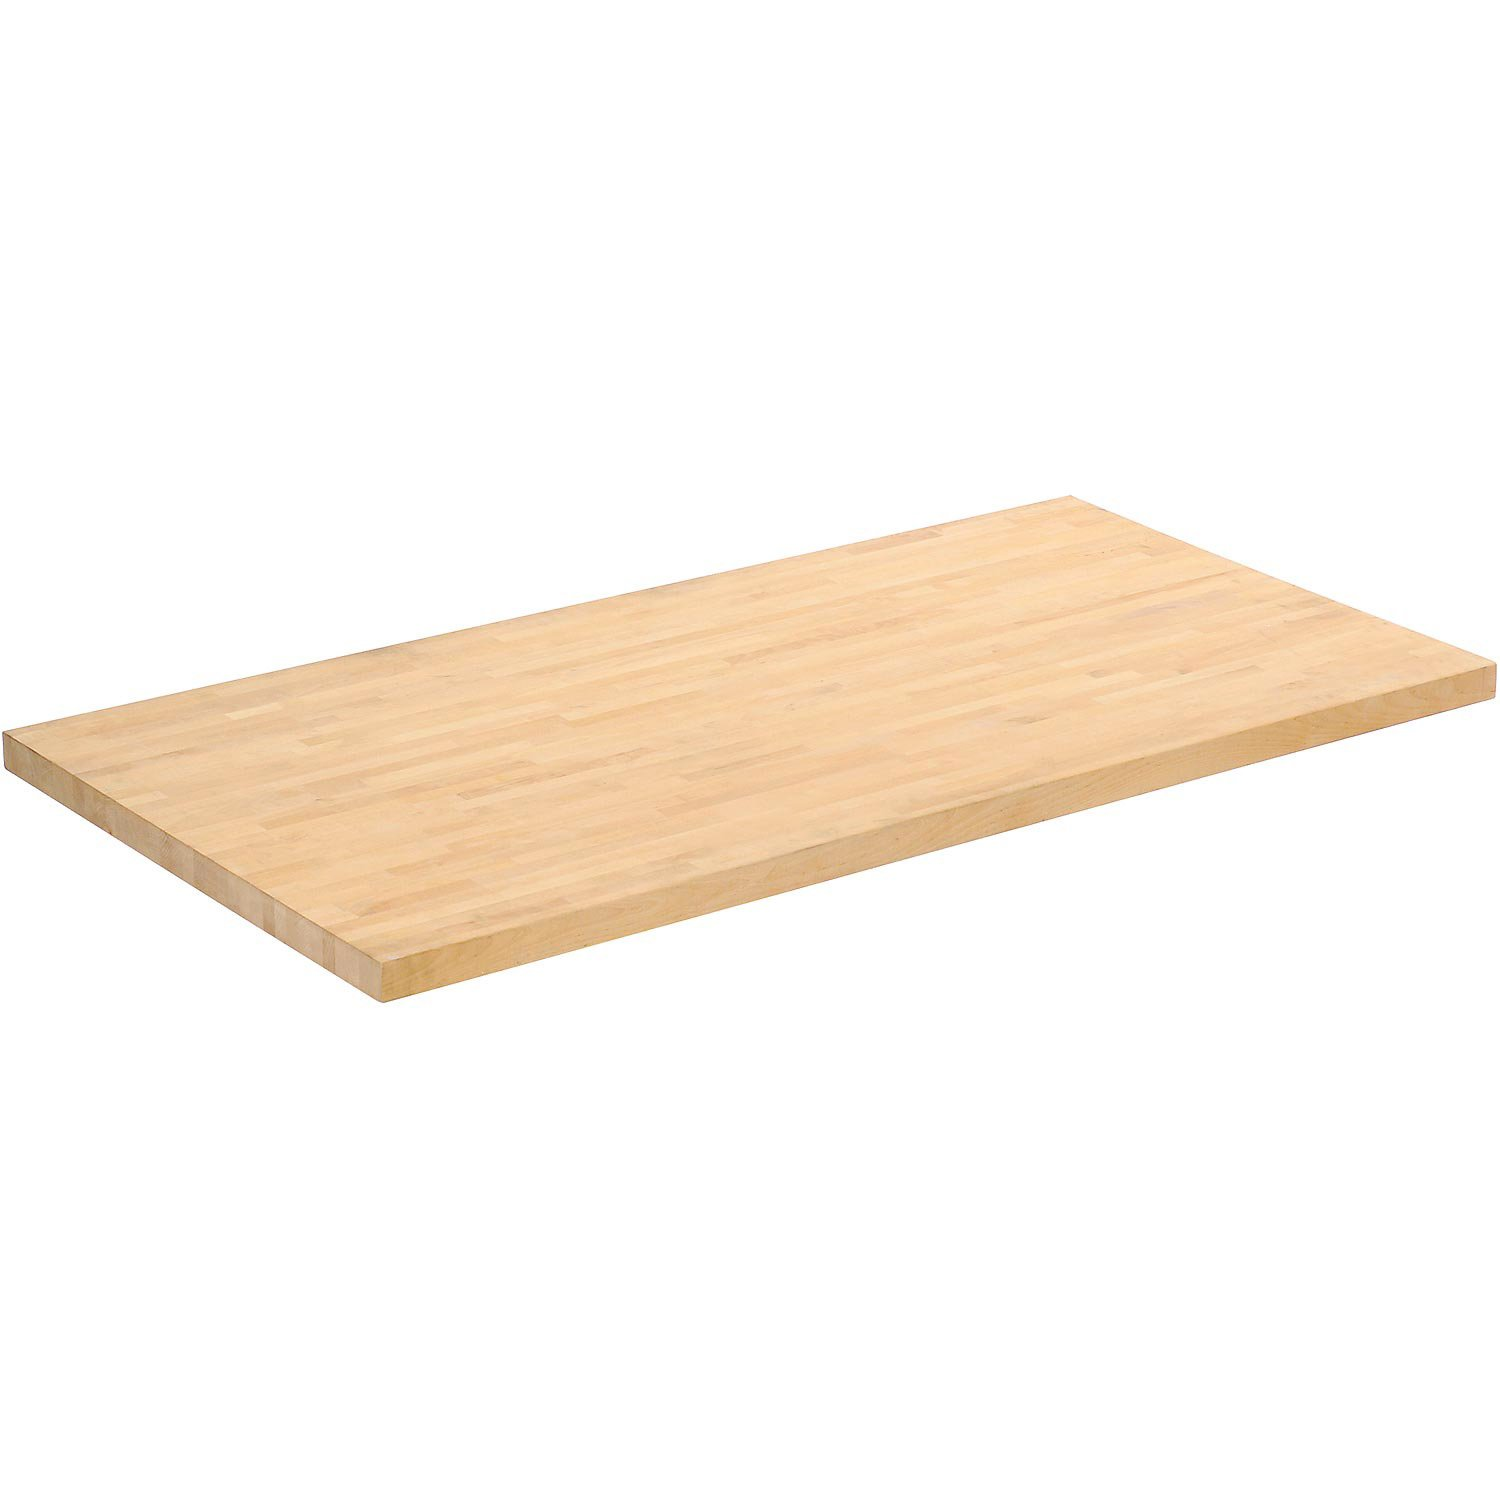 Butcher Block Workbench >> Workbench Top Birch Butcher Block Square Edge 48 W X 30 D X 1 3 4 Thick